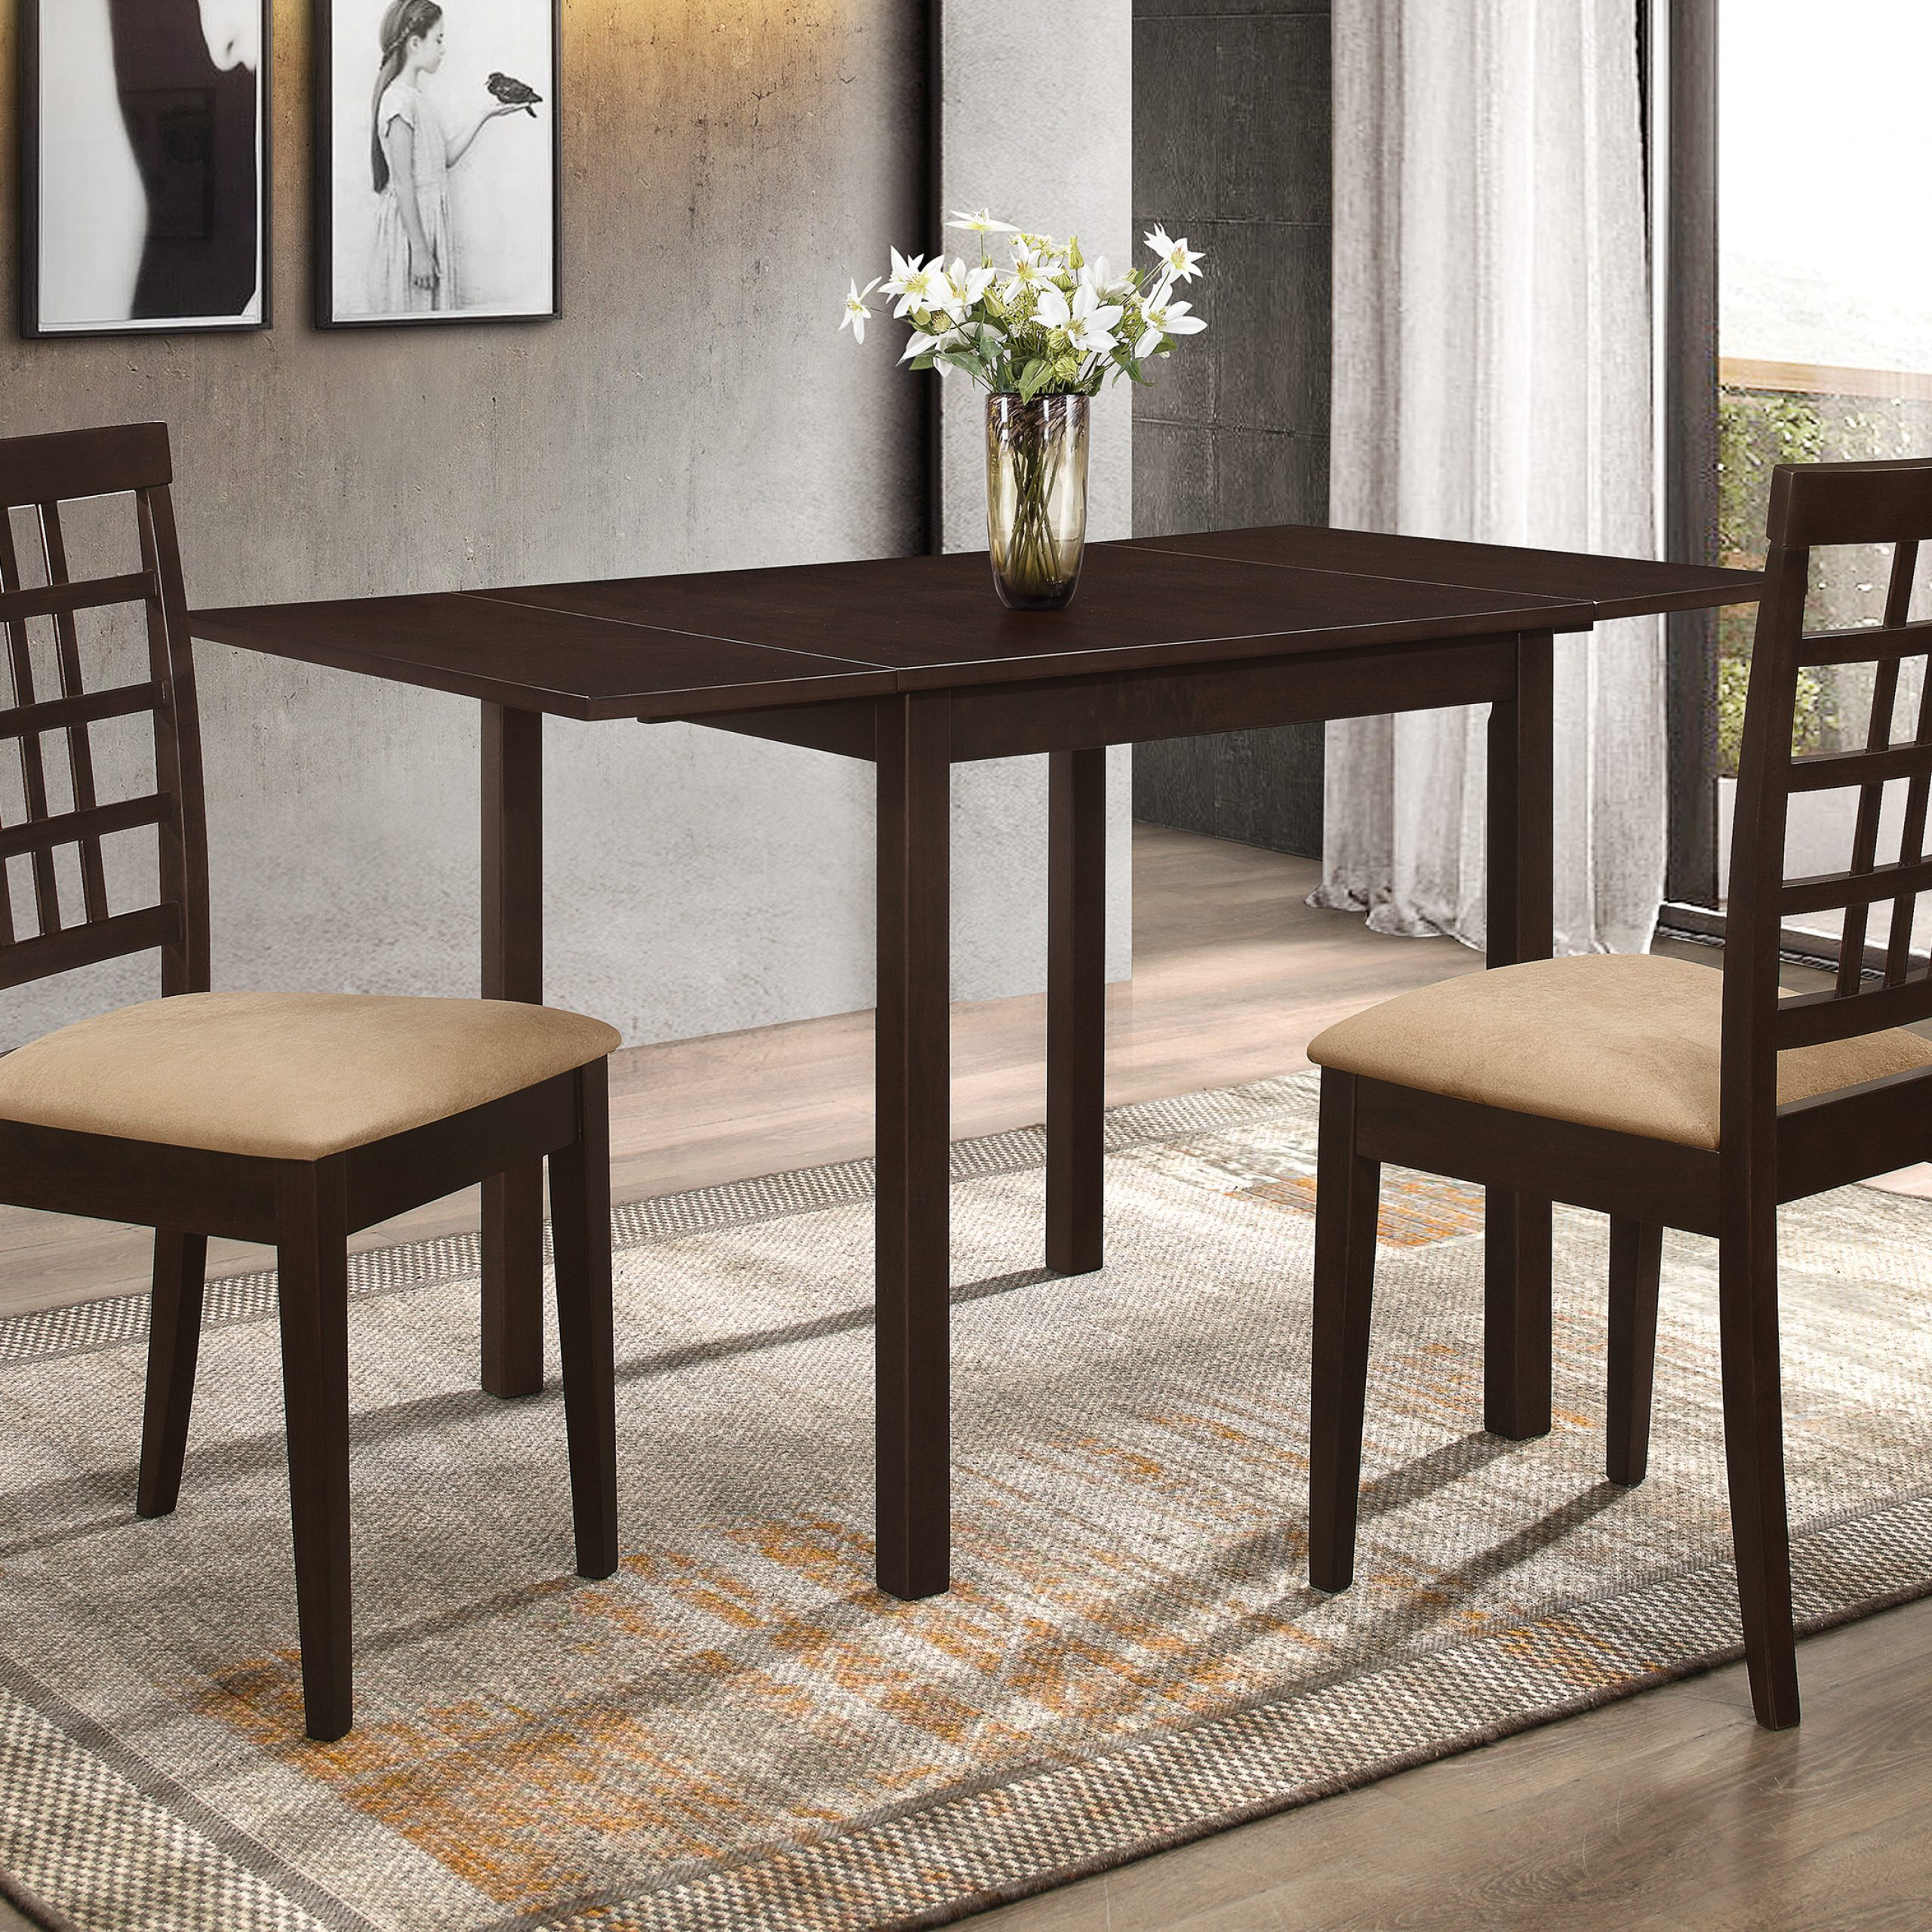 Favorite Transitional 4 Seating Drop Leaf Casual Dining Tables Regarding Kelso Rectangular Dining Table With Drop Leaf Cappuccino (View 5 of 25)